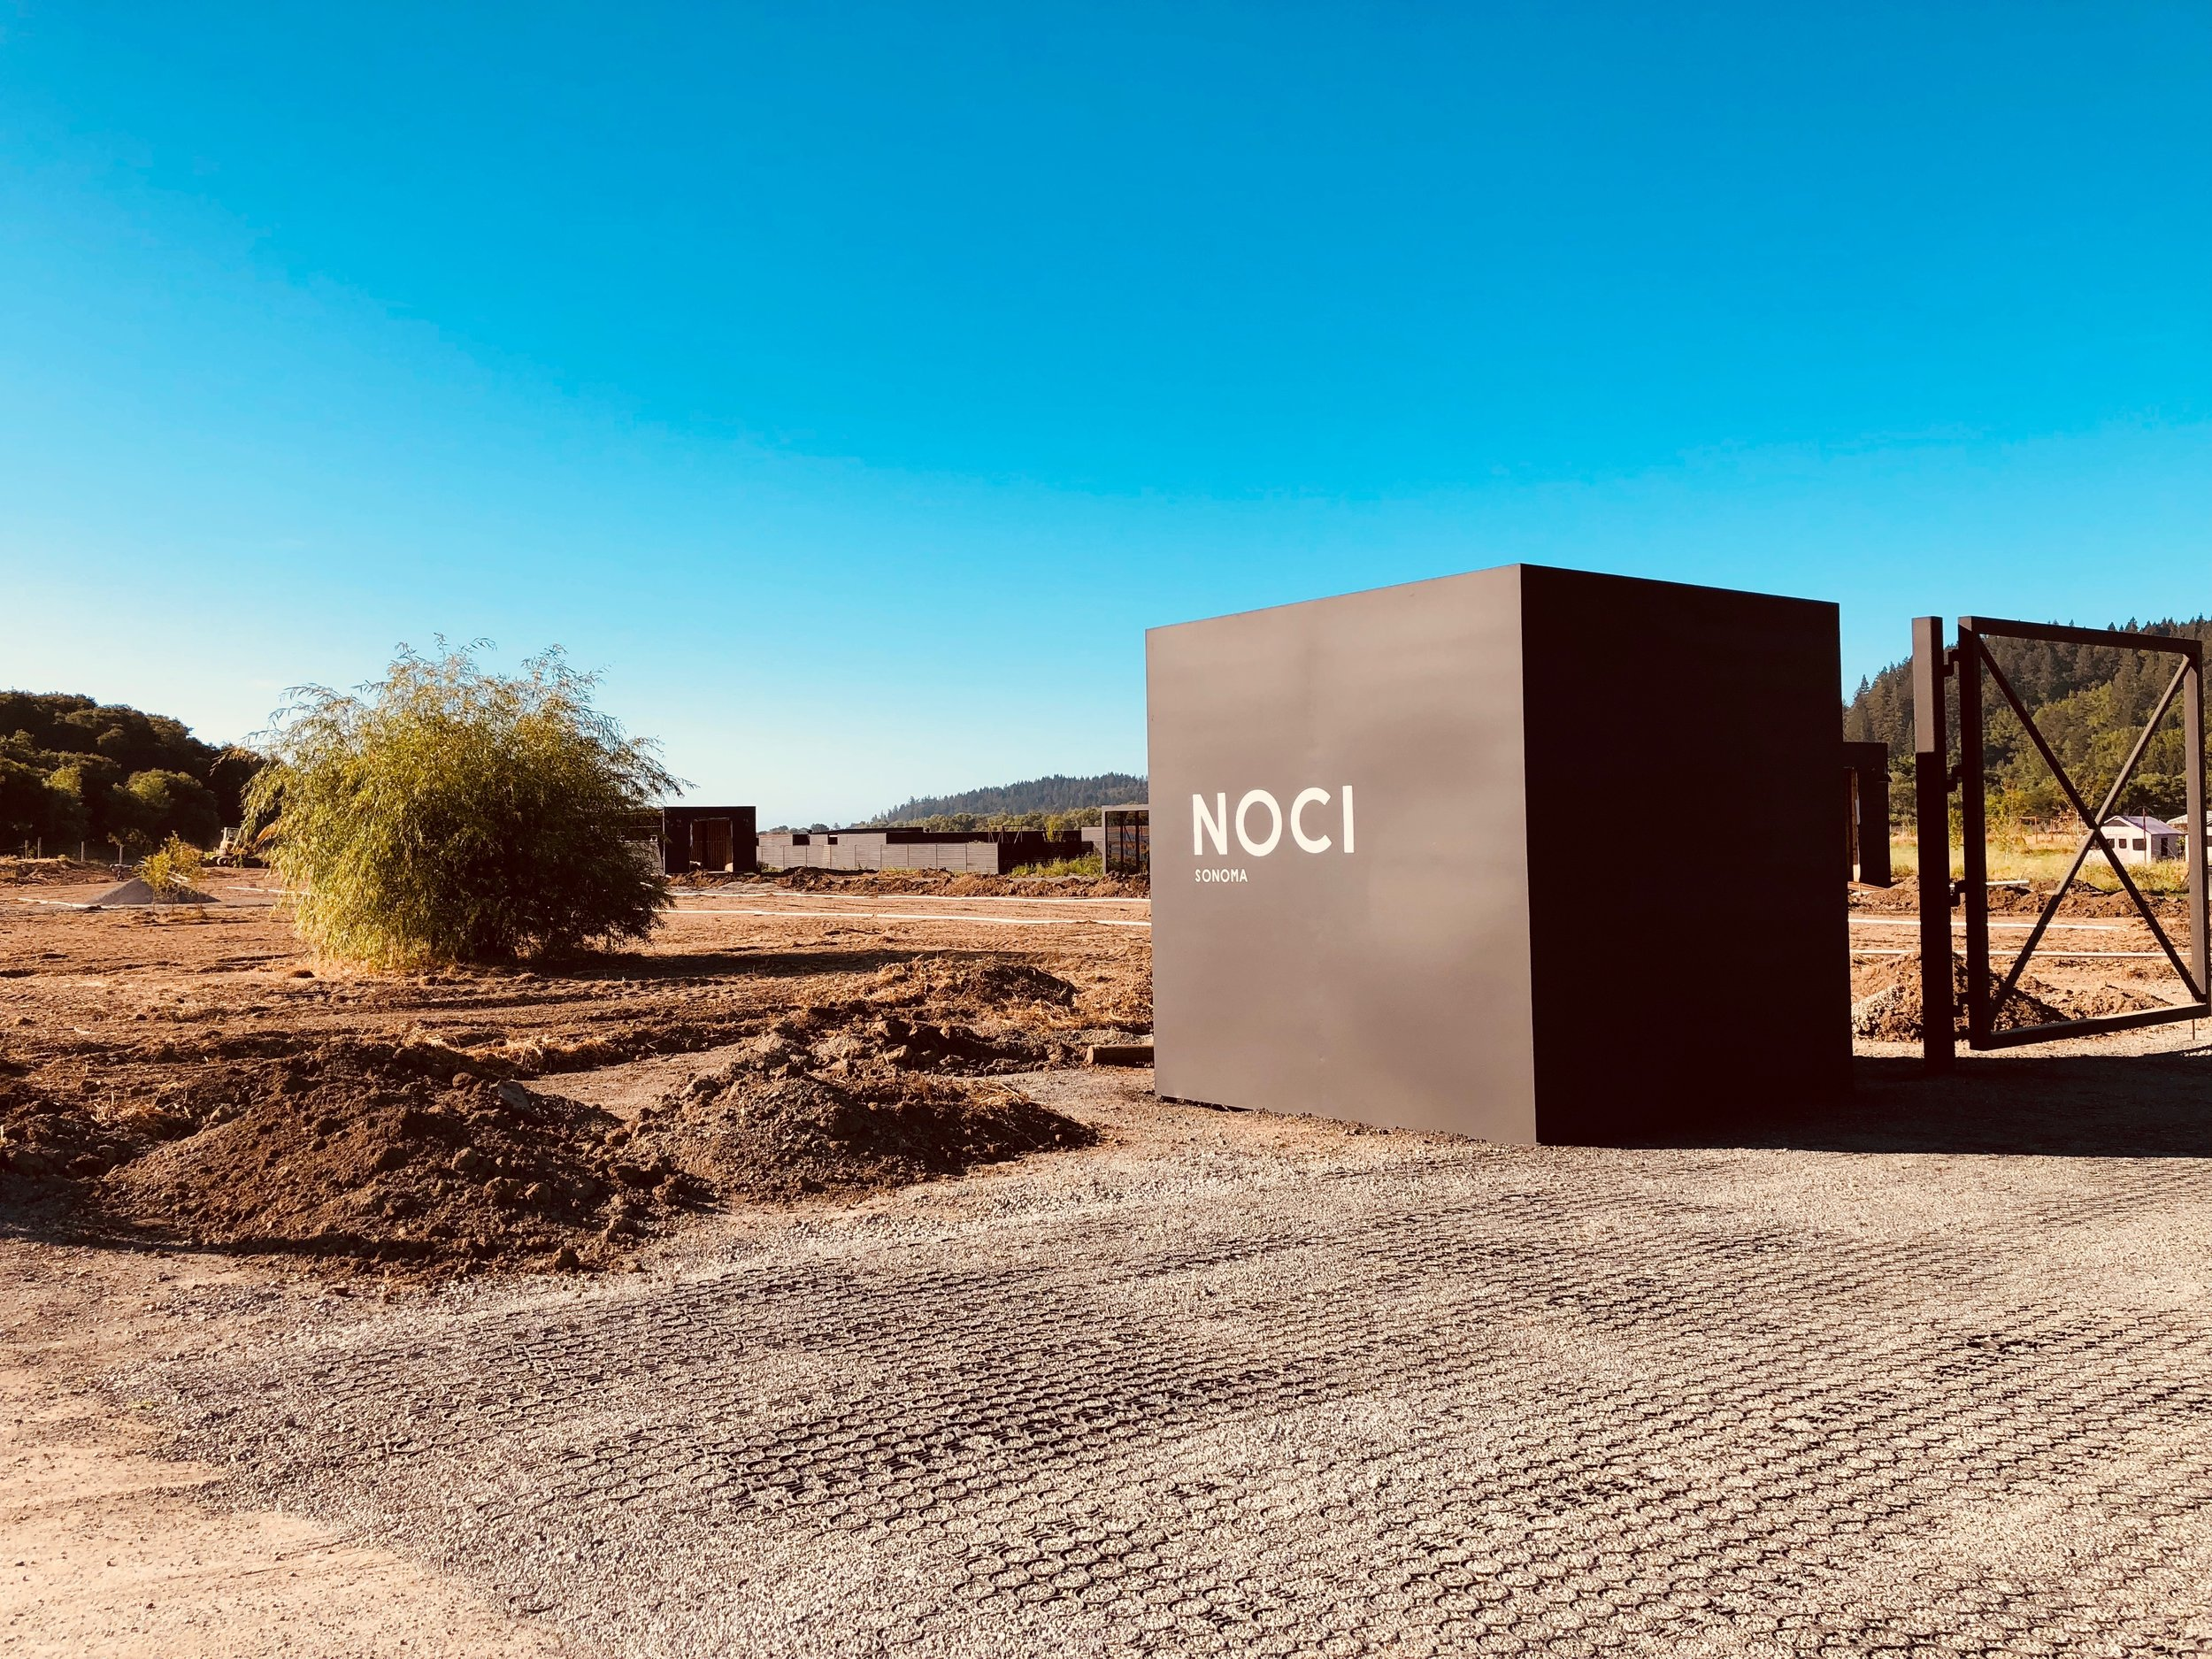 The new Noci gates and our new logo. The gates will get plants and trees around them next week and look more complete. But we are already excited just seeing the raw box sitting in the dirt.